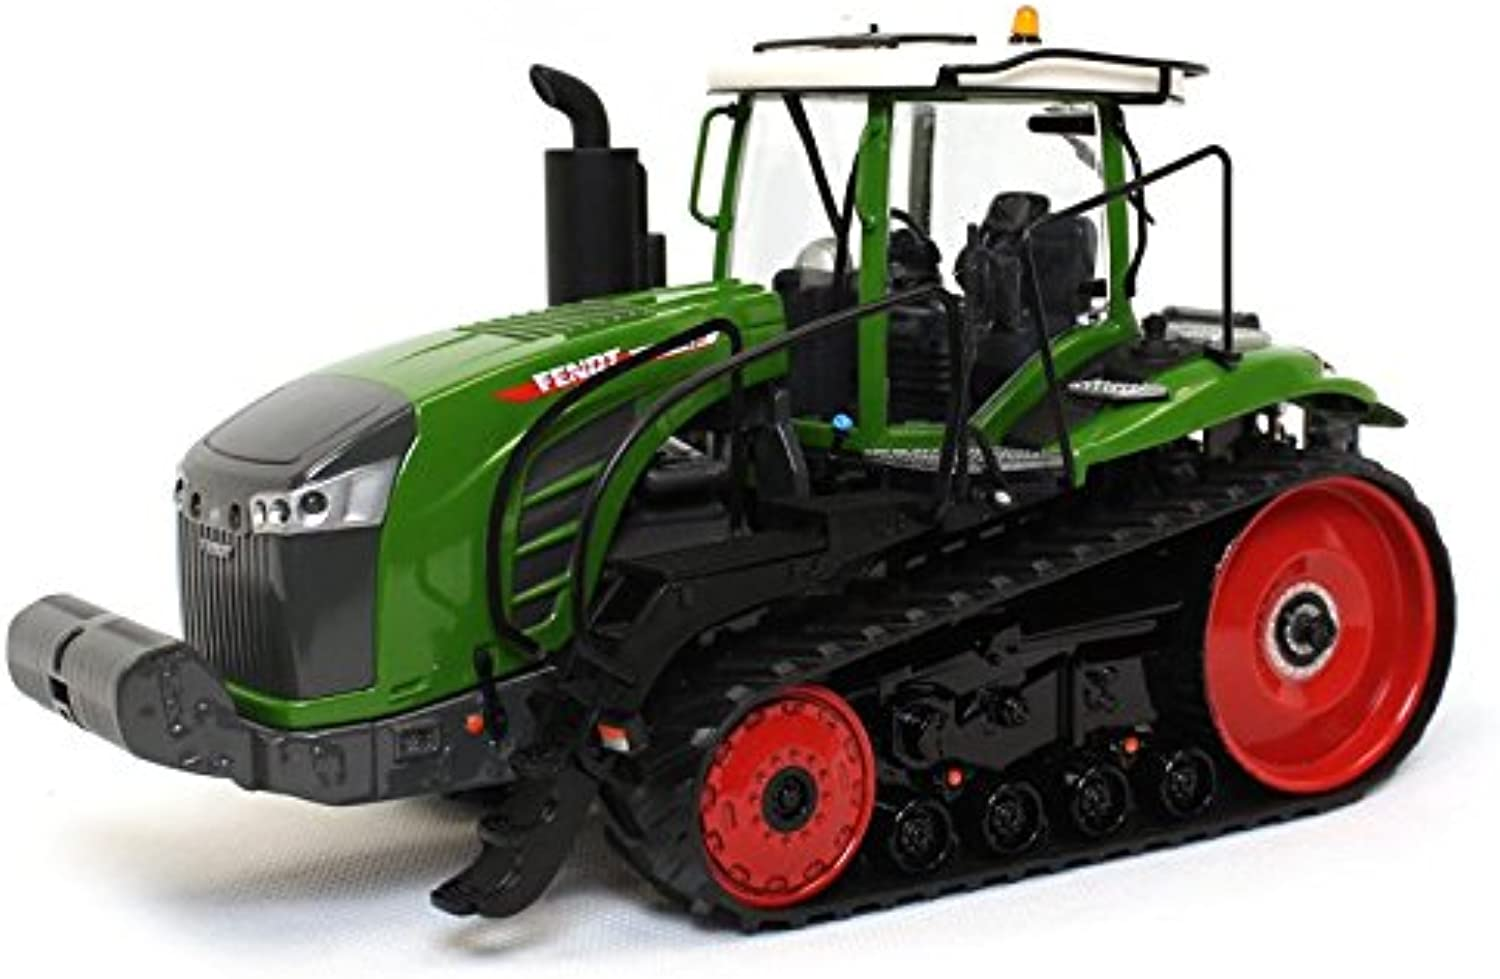 USK FENDT 1165 MT CON LUCI 1 32 MODELLINO DIE CAST MODEL 10635